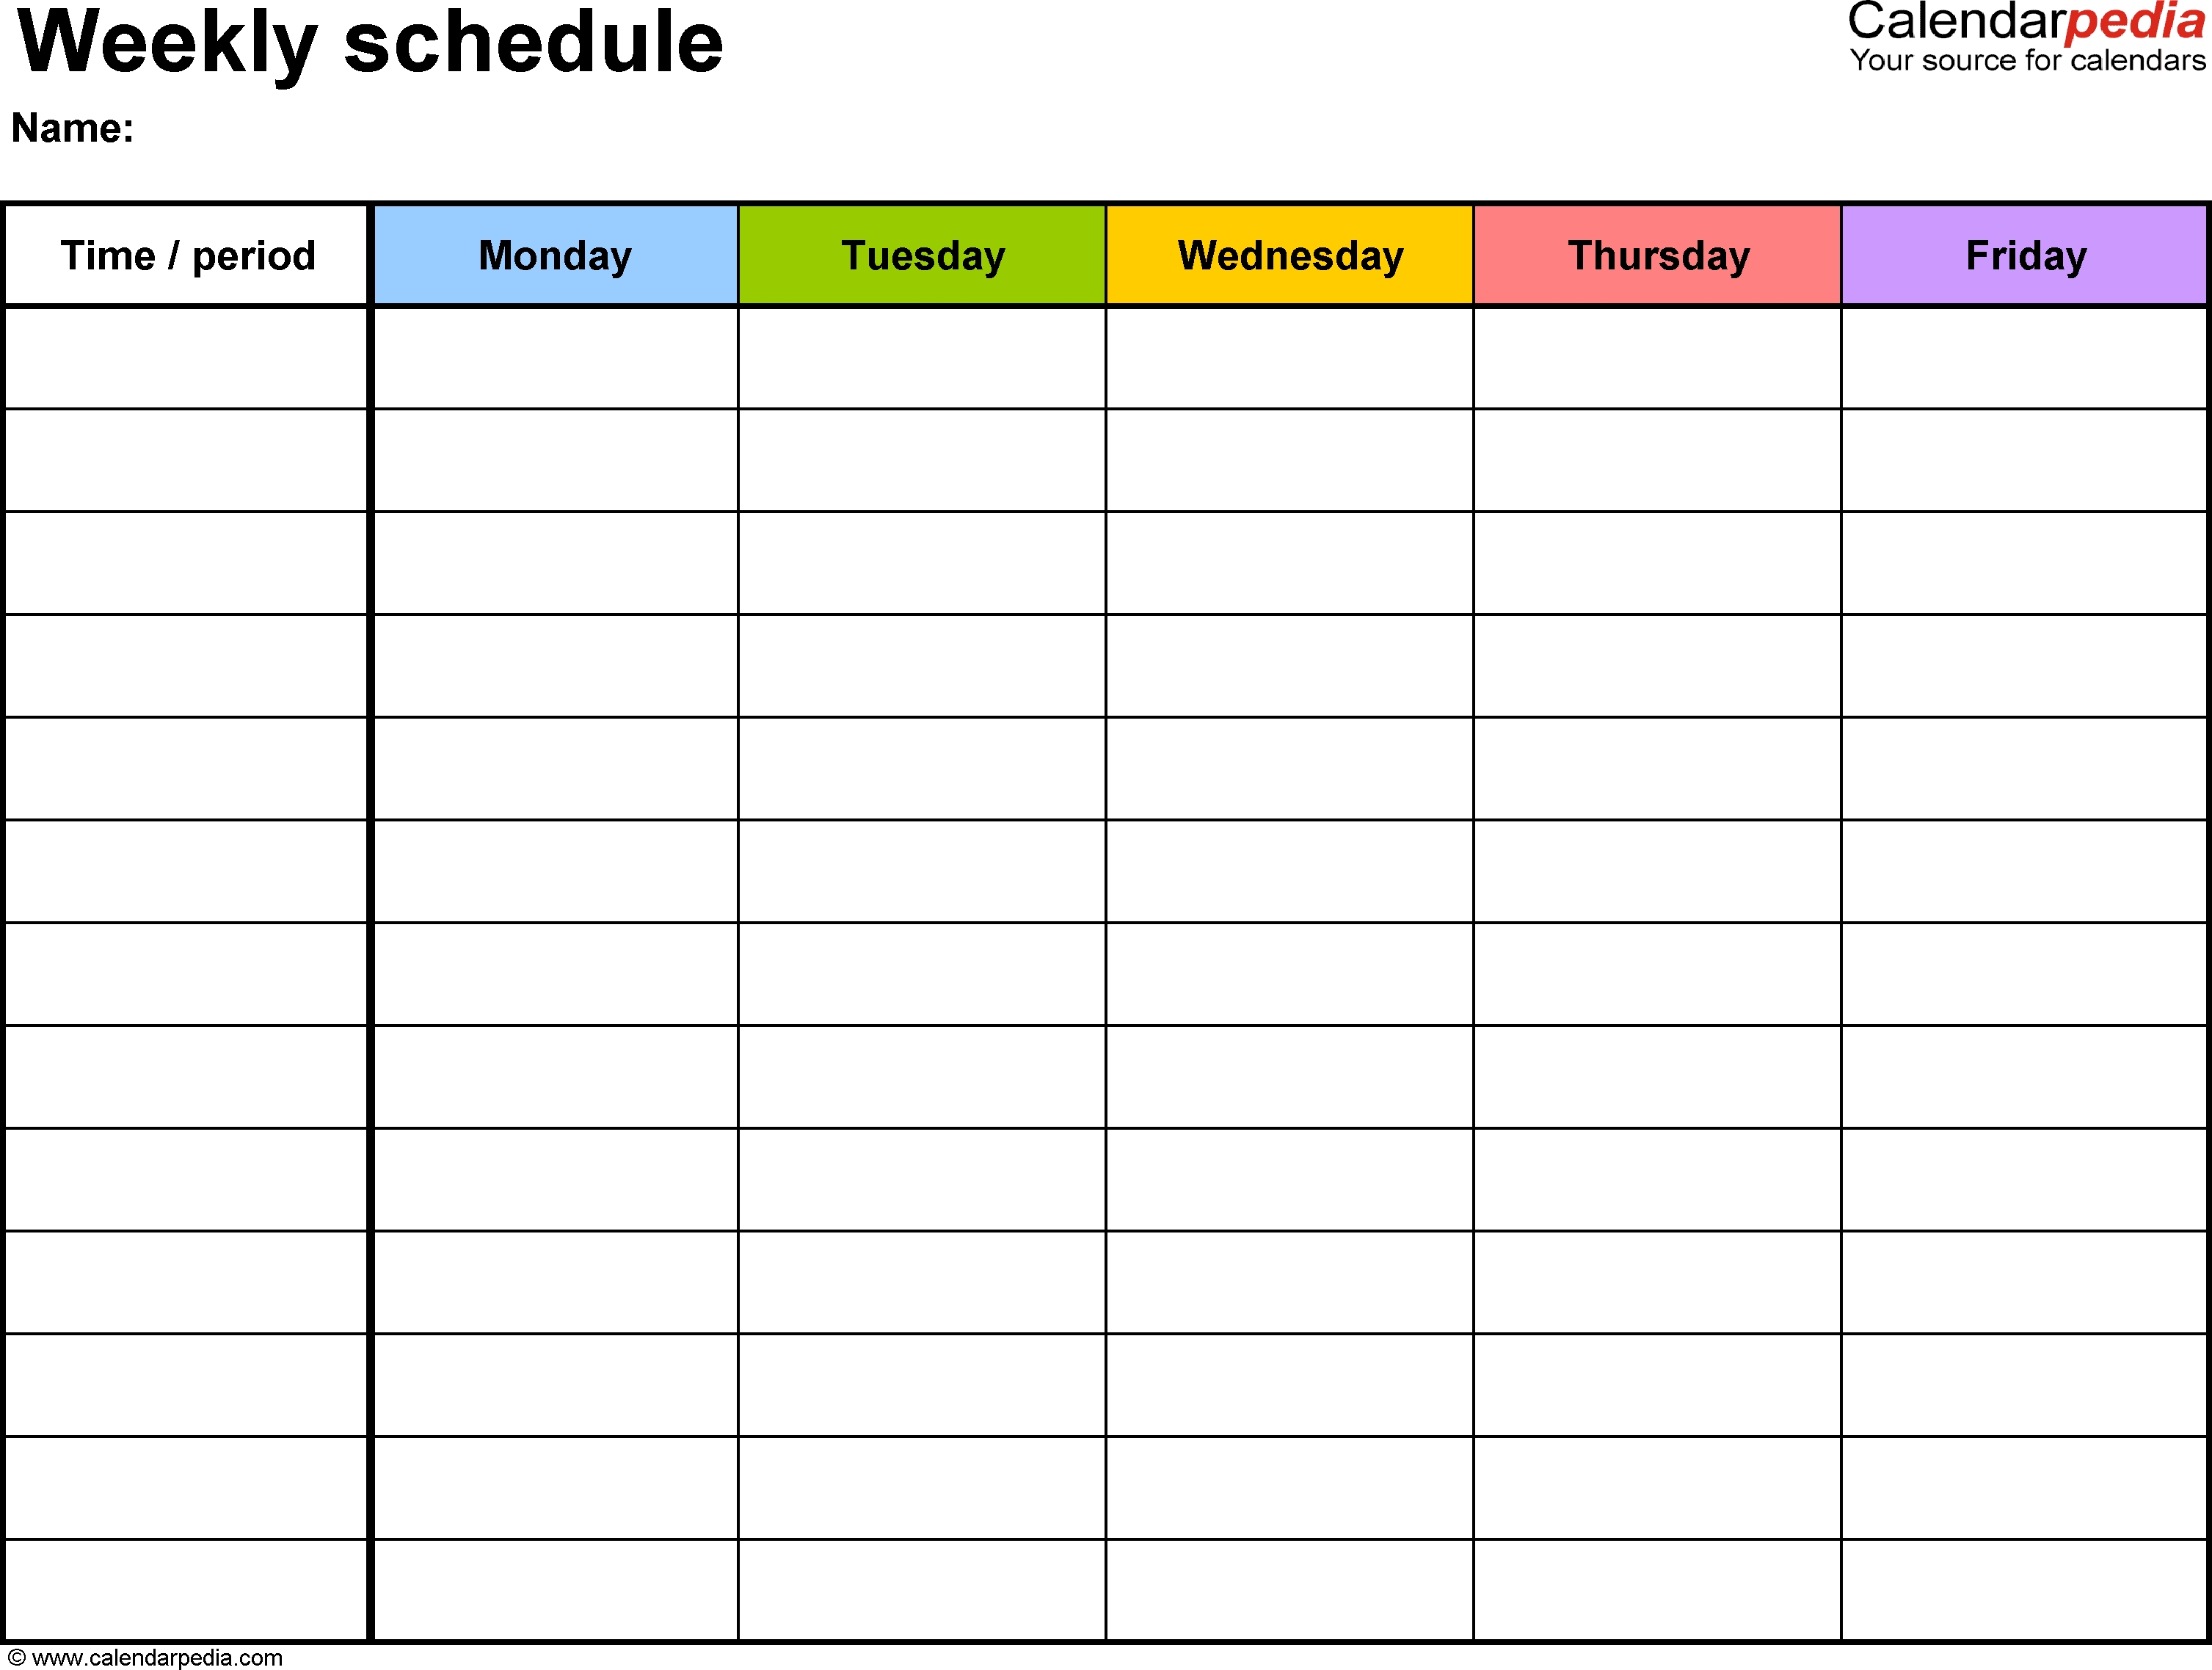 Free Weekly Schedule Templates For Word - 18 Templates within Weekly Planner Printable Day 7